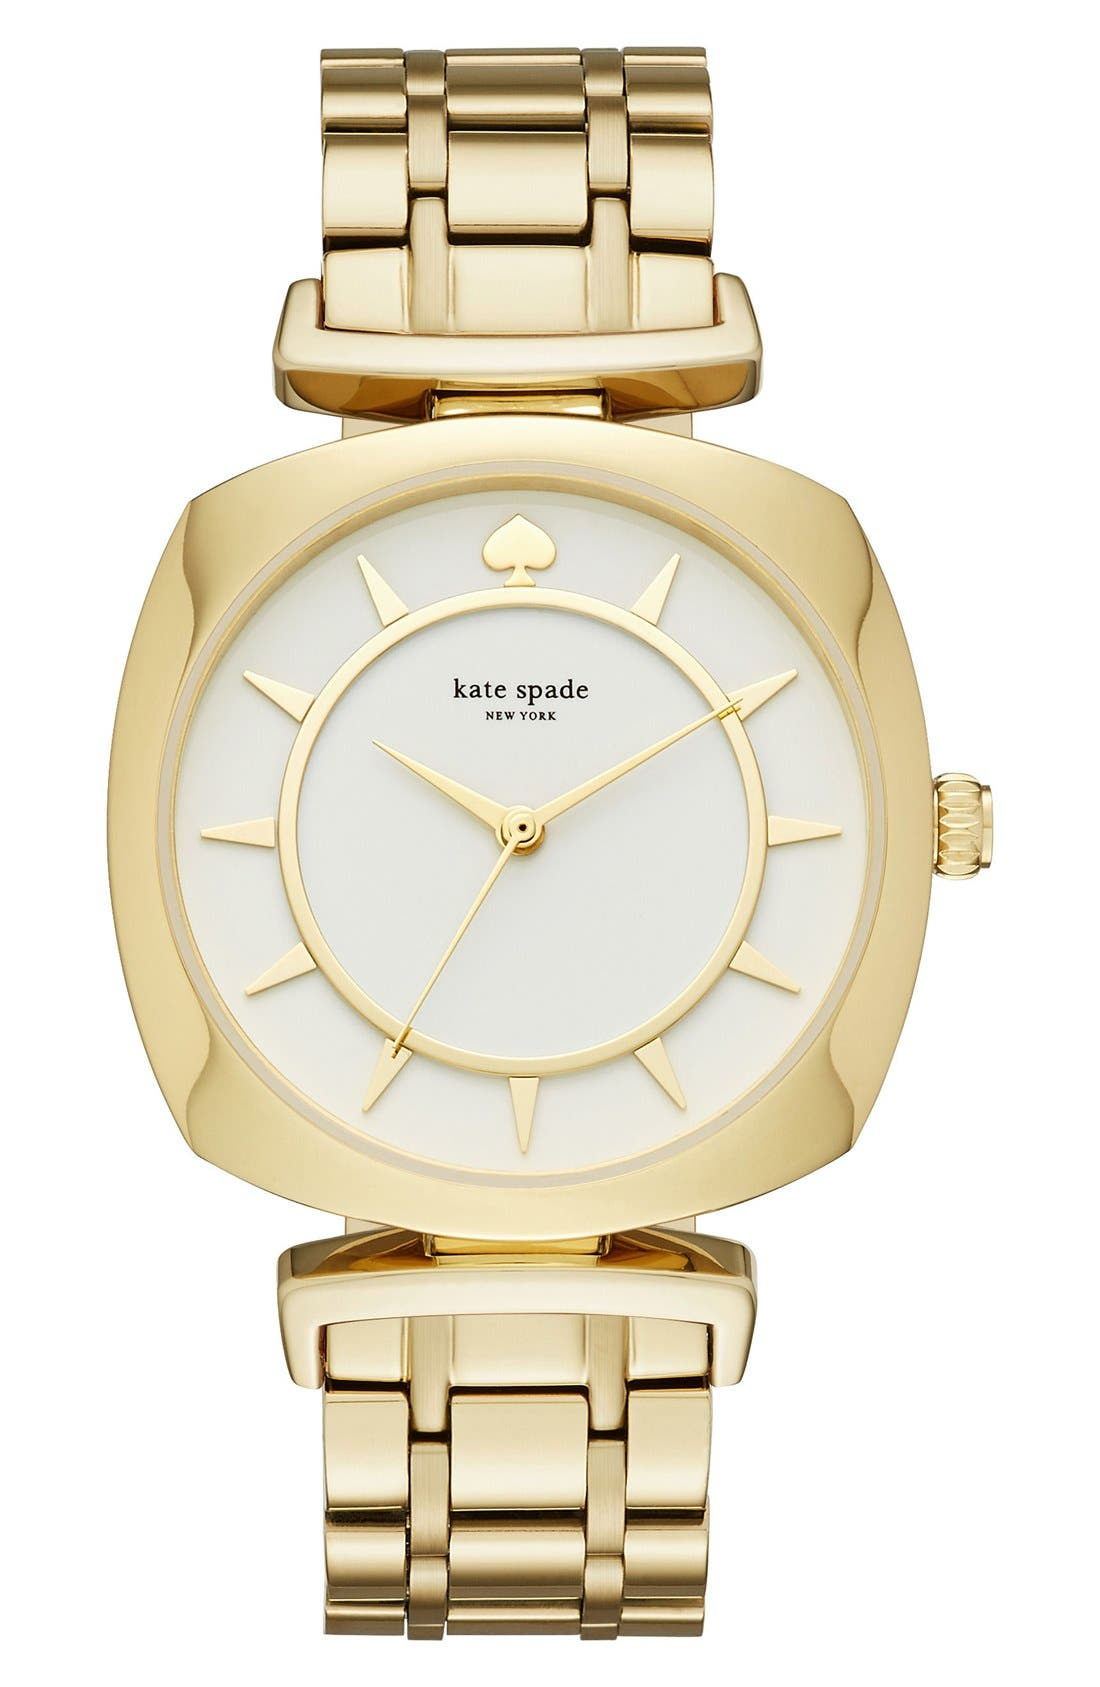 KATE SPADE NEW YORK barrow bracelet watch, 34mm